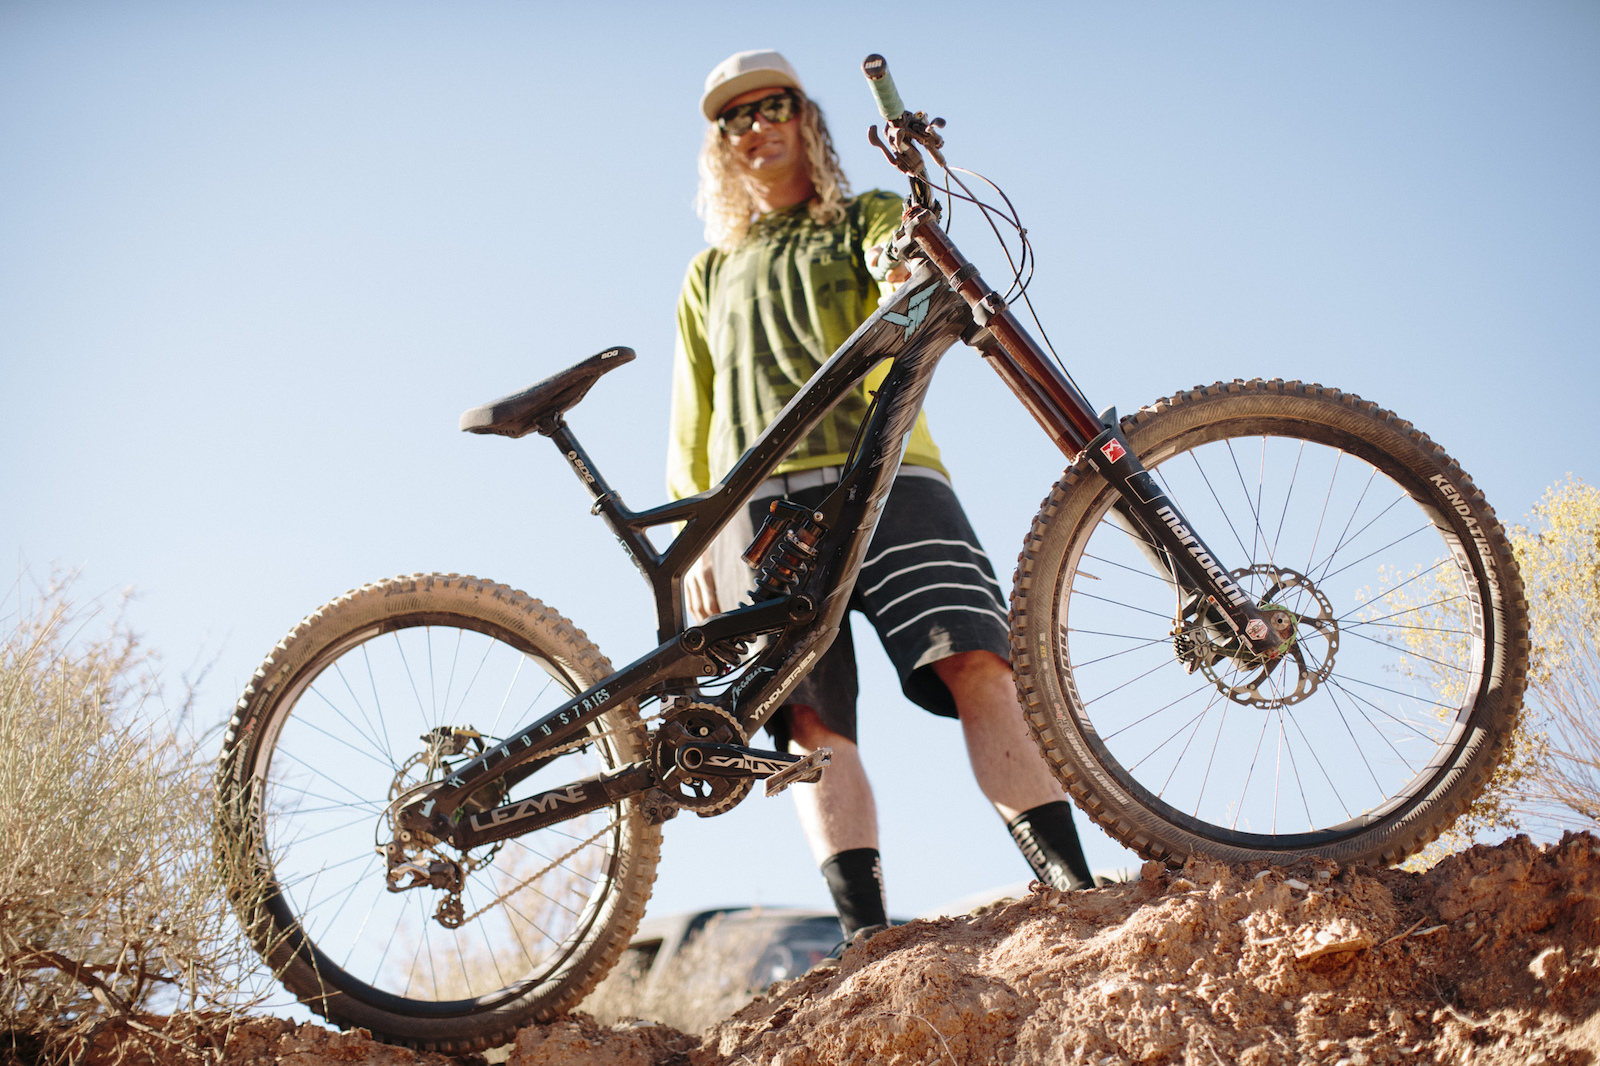 Kelly McGarry at RedBull Rampage 2015 Virgin Utah USA